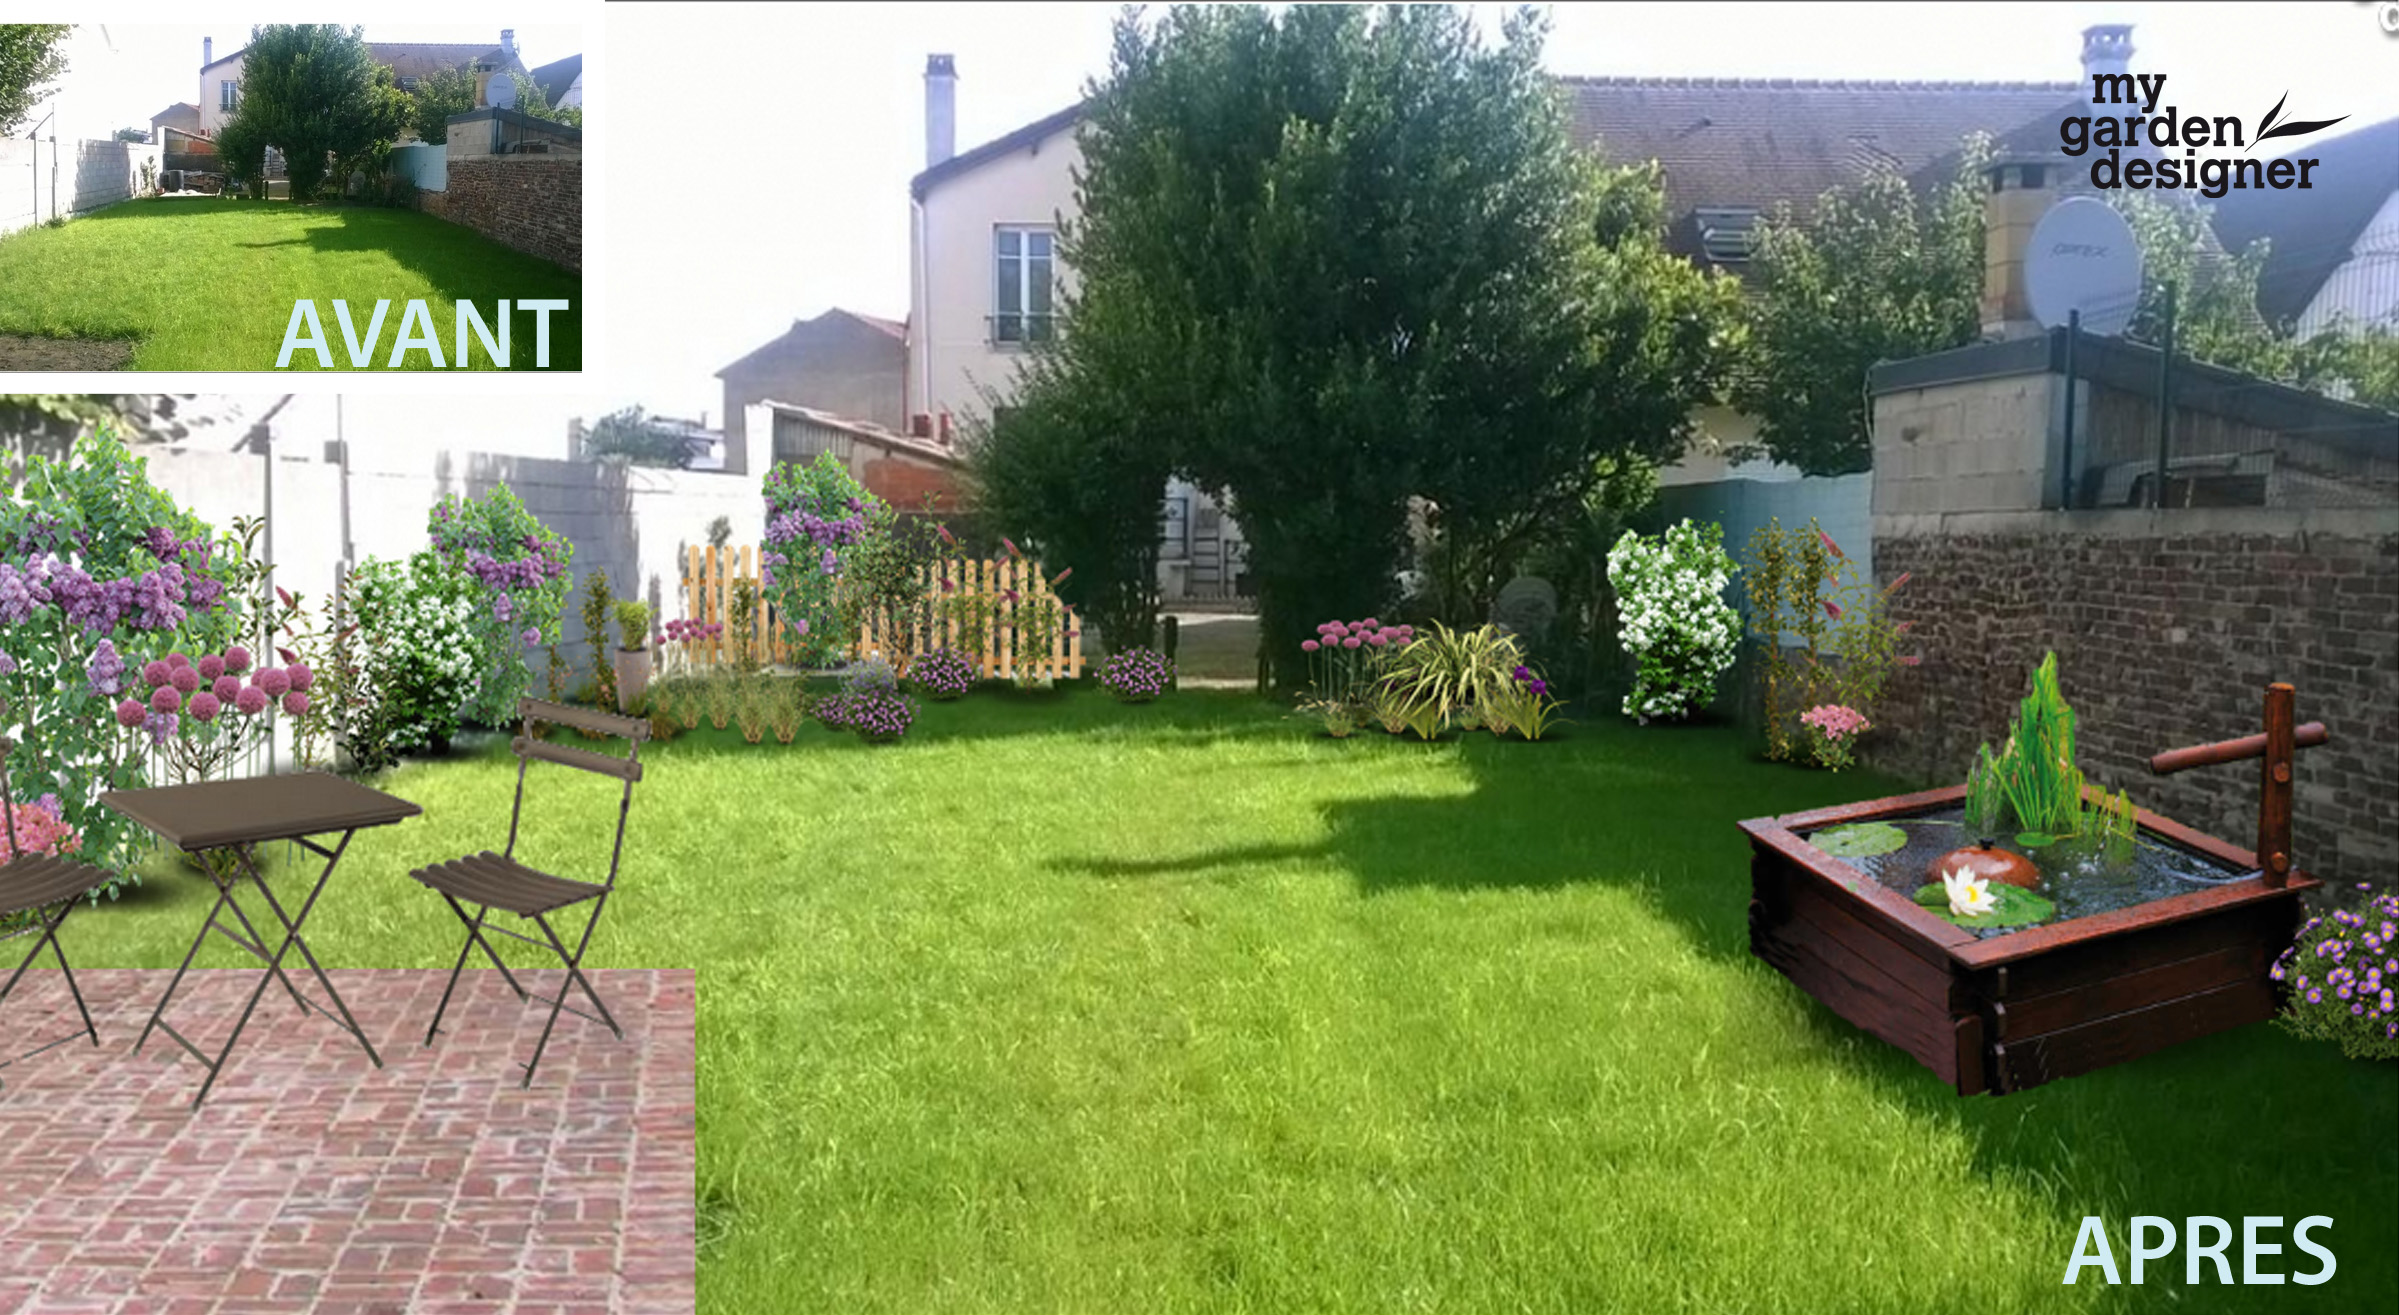 Am nager un jardin carr en ile de france monjardin for Jardin remarquable ile de france